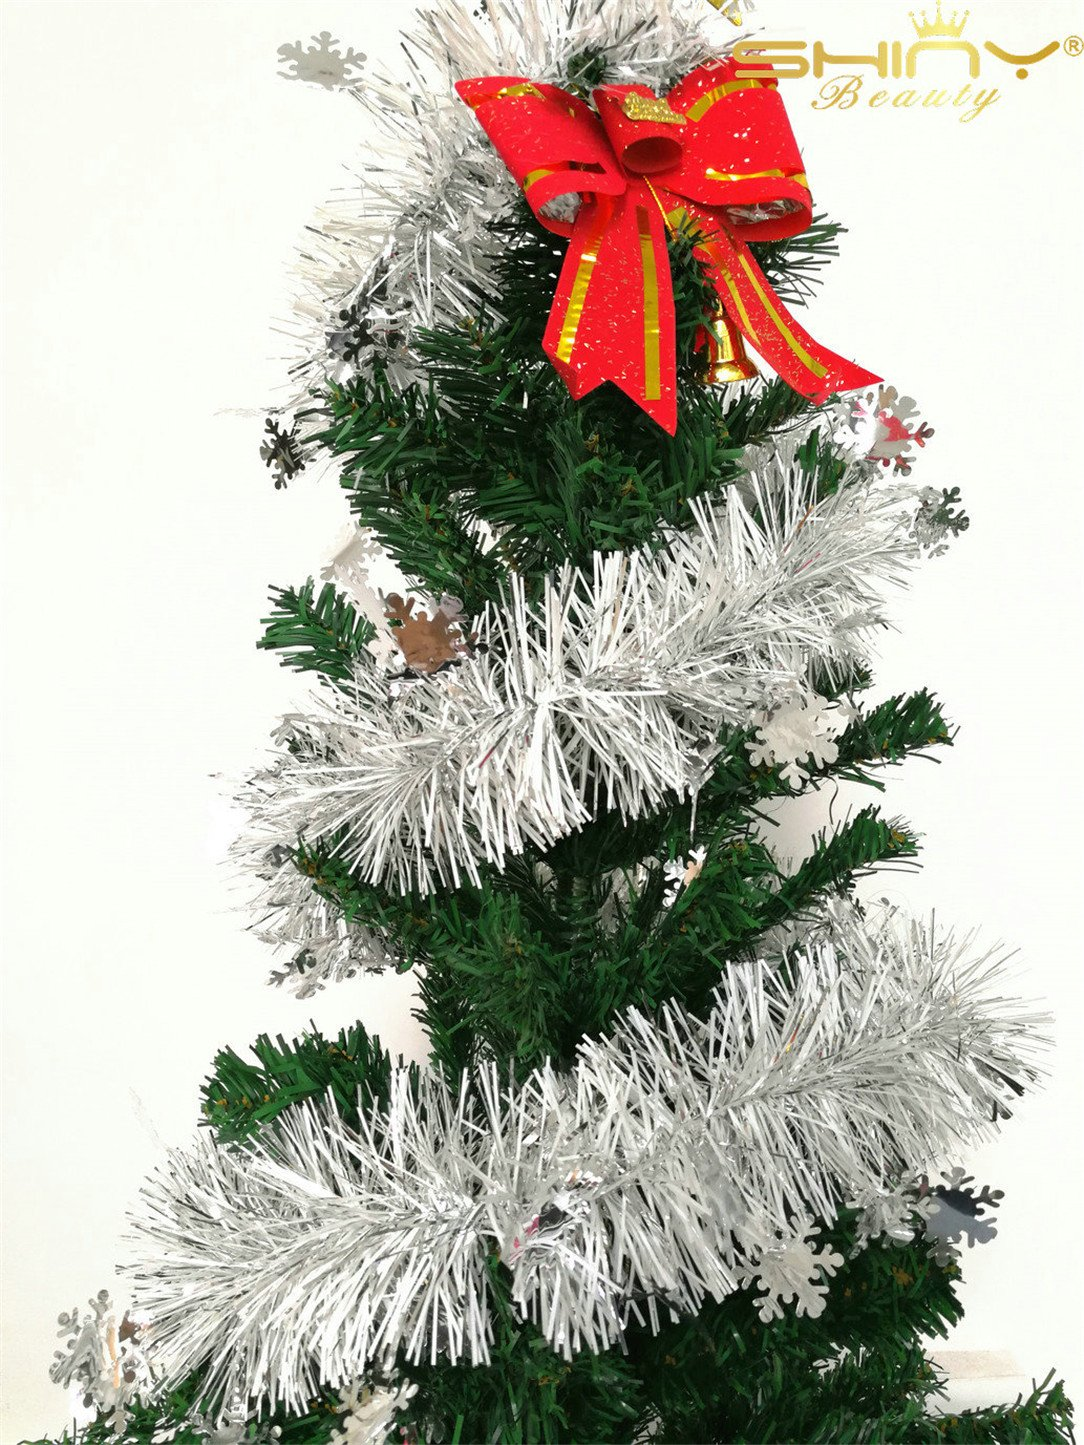 DUOBAO Christmas-Tinsel-Garland Full and Thick Fancy Party Hanging Christmas Tree Ornaments Tinsel Fringe Decorations, 15 Pcs 6.6 Ft (2M) x 3.4 inch Wide, Silver Snow- TG002~1025S